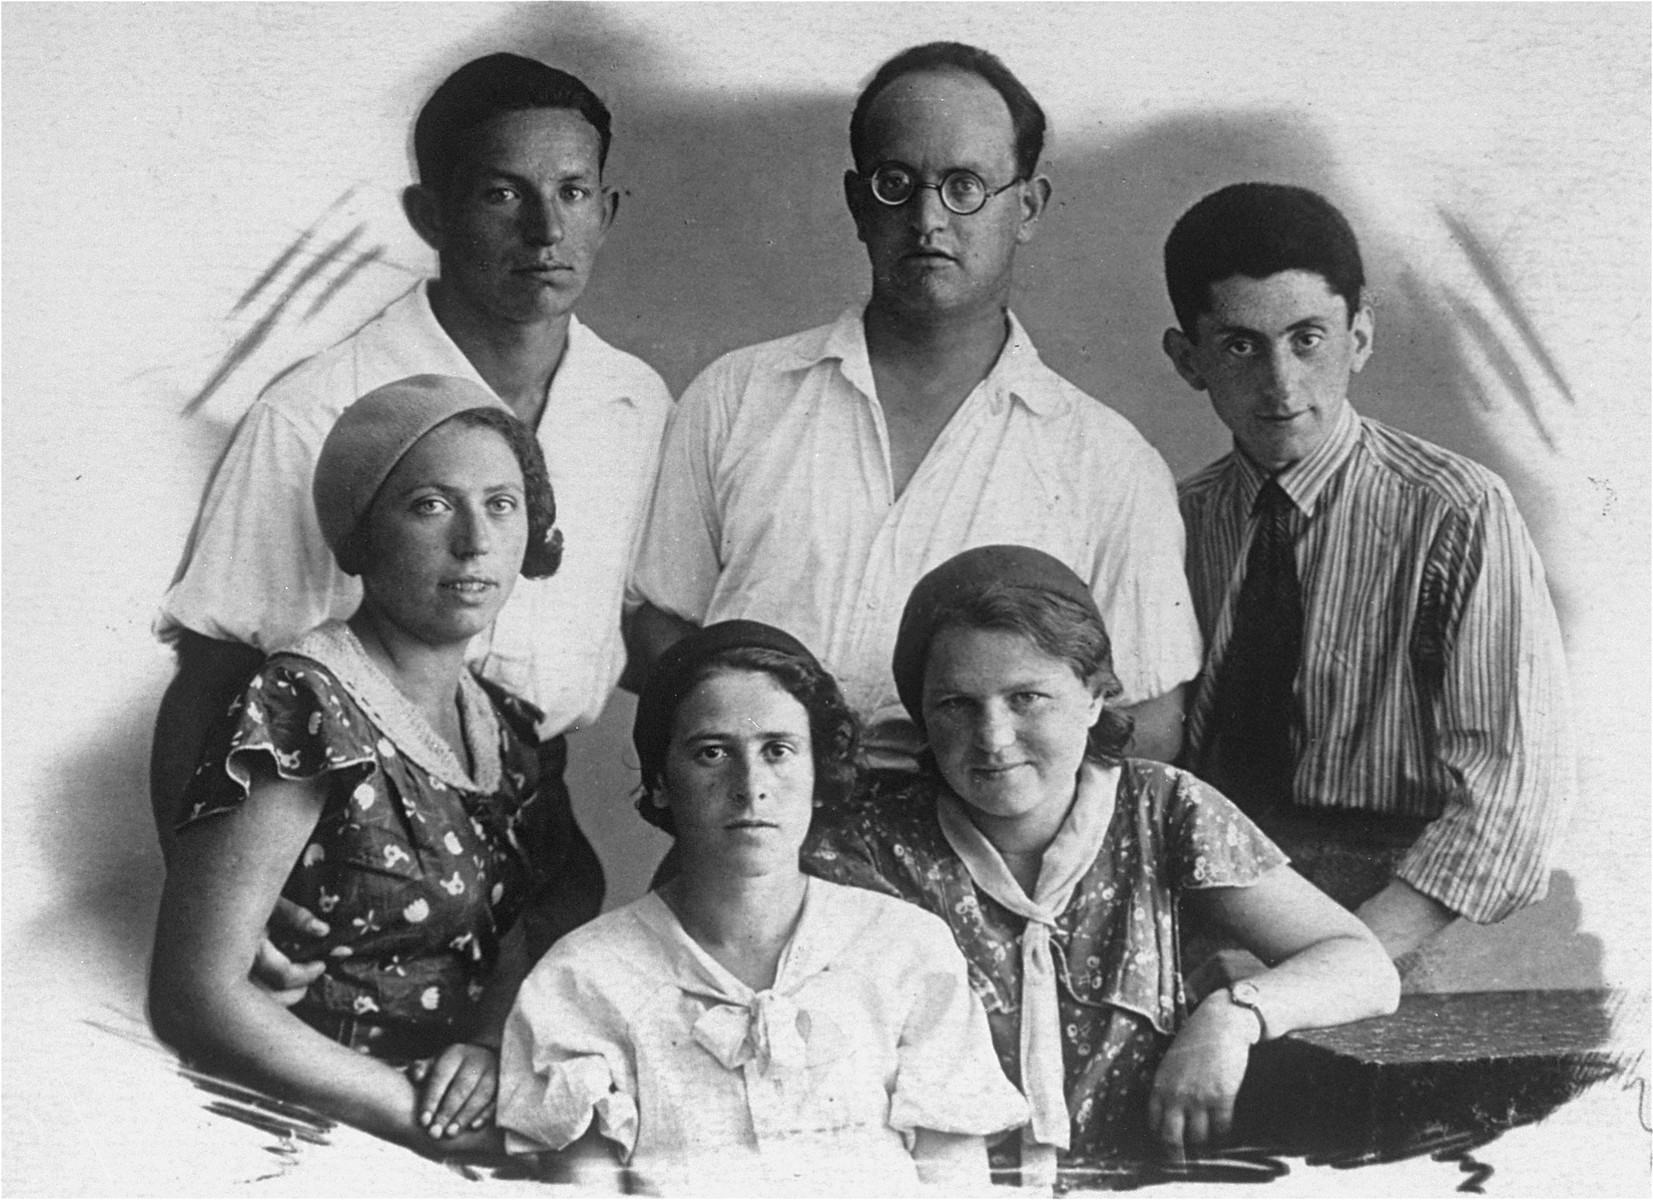 Studio portrait of members of the Rudashevsky family in Vilna.   Pictured in the back row from left to right are: Shika Jurer, Avraham Jurer and Mula Mirsky.  In the front row from left to right are: Hannah Jurer, Rosa Rudashevsky, and Sarah Rudashevsky.